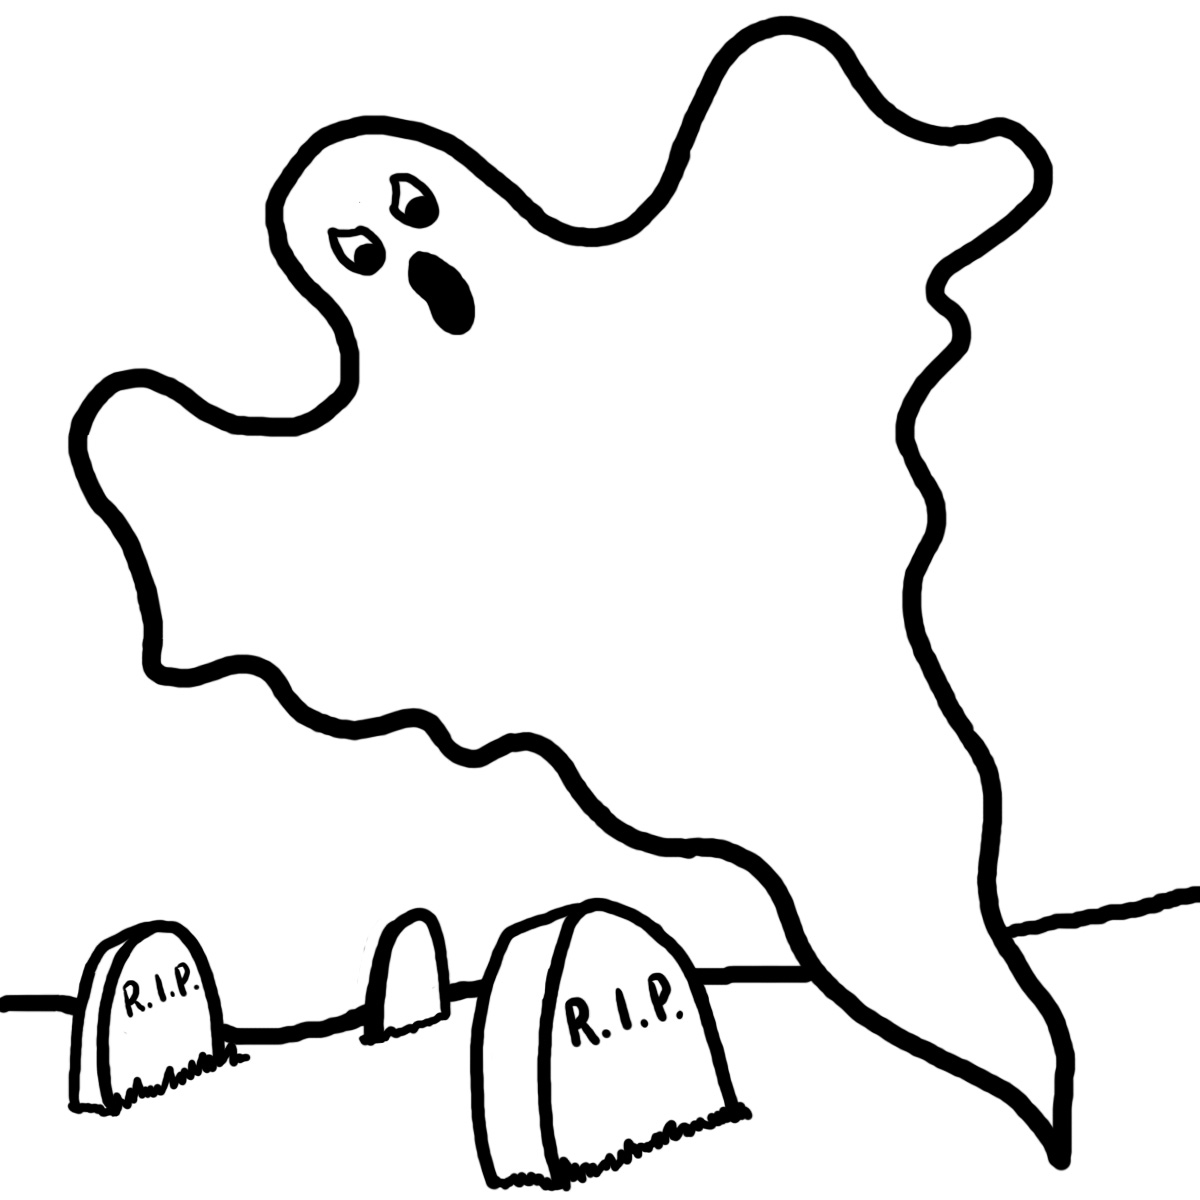 coloring pages on ghosts reading - photo#31